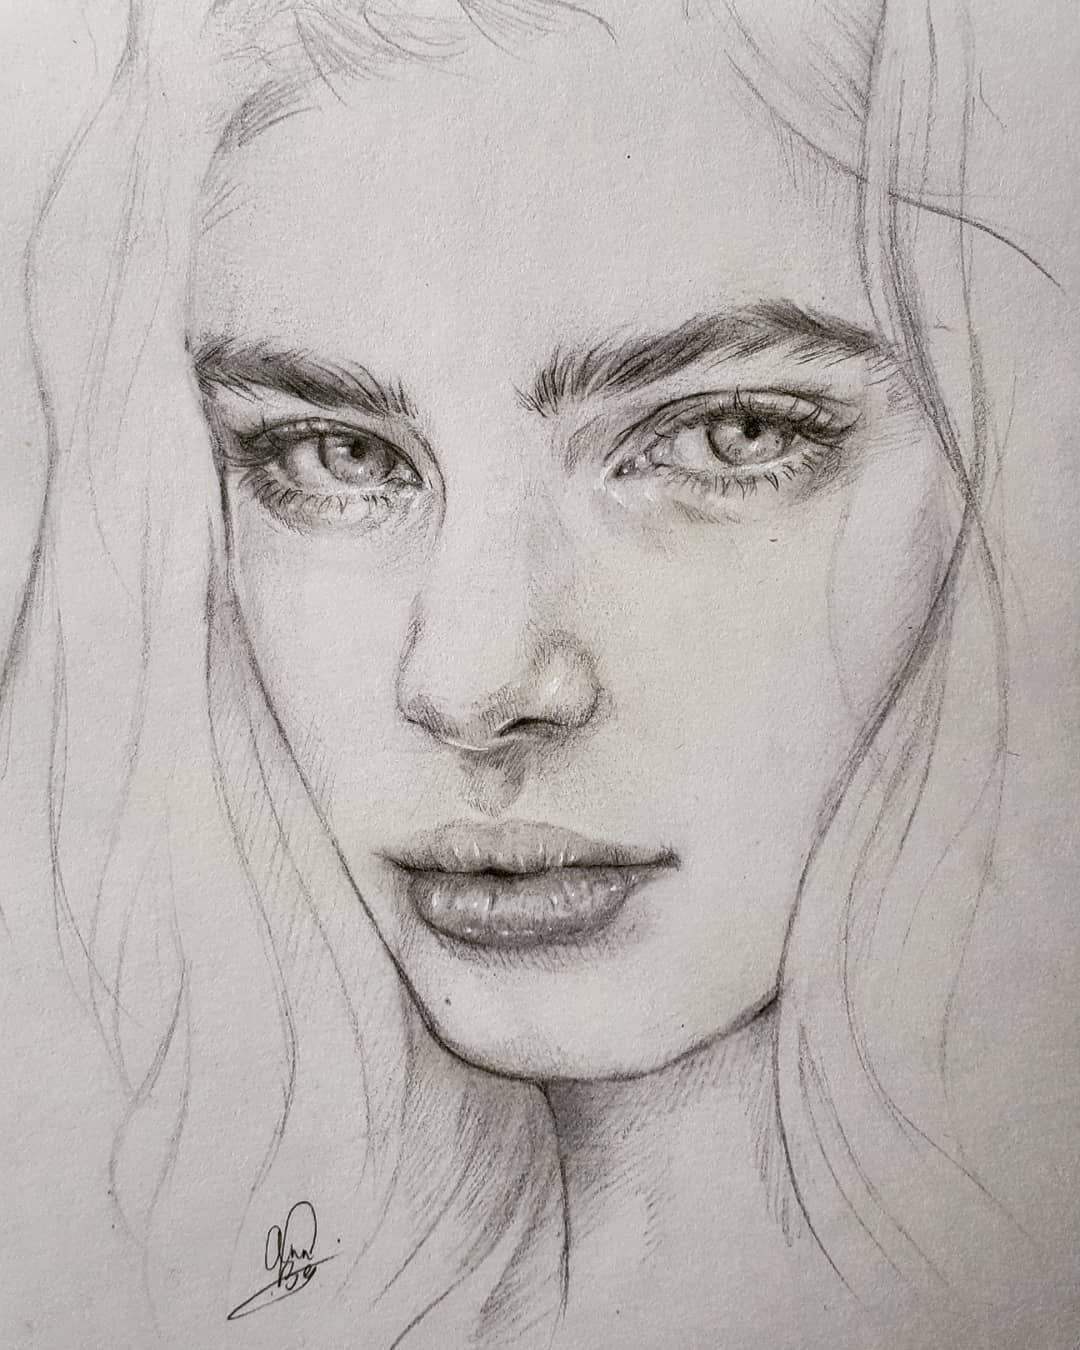 Annelies bes on instagram todays sketch of taylor hill ✏